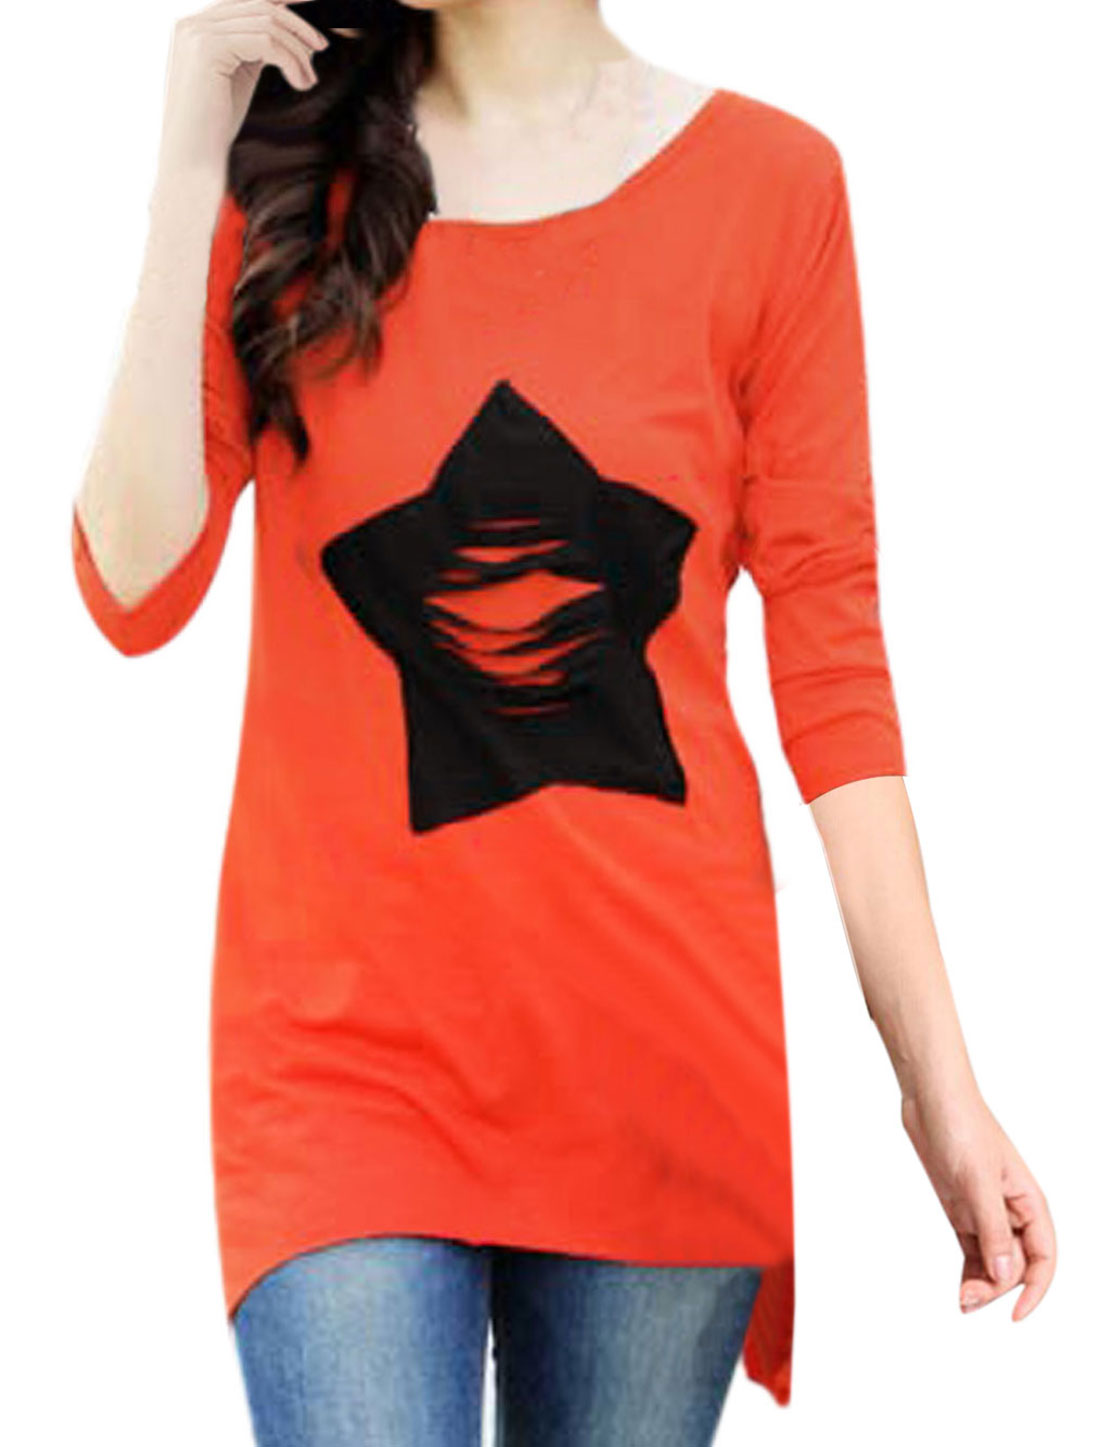 Women Stars Applique Irregular Hem Design Tunic Shirt Orange Red S